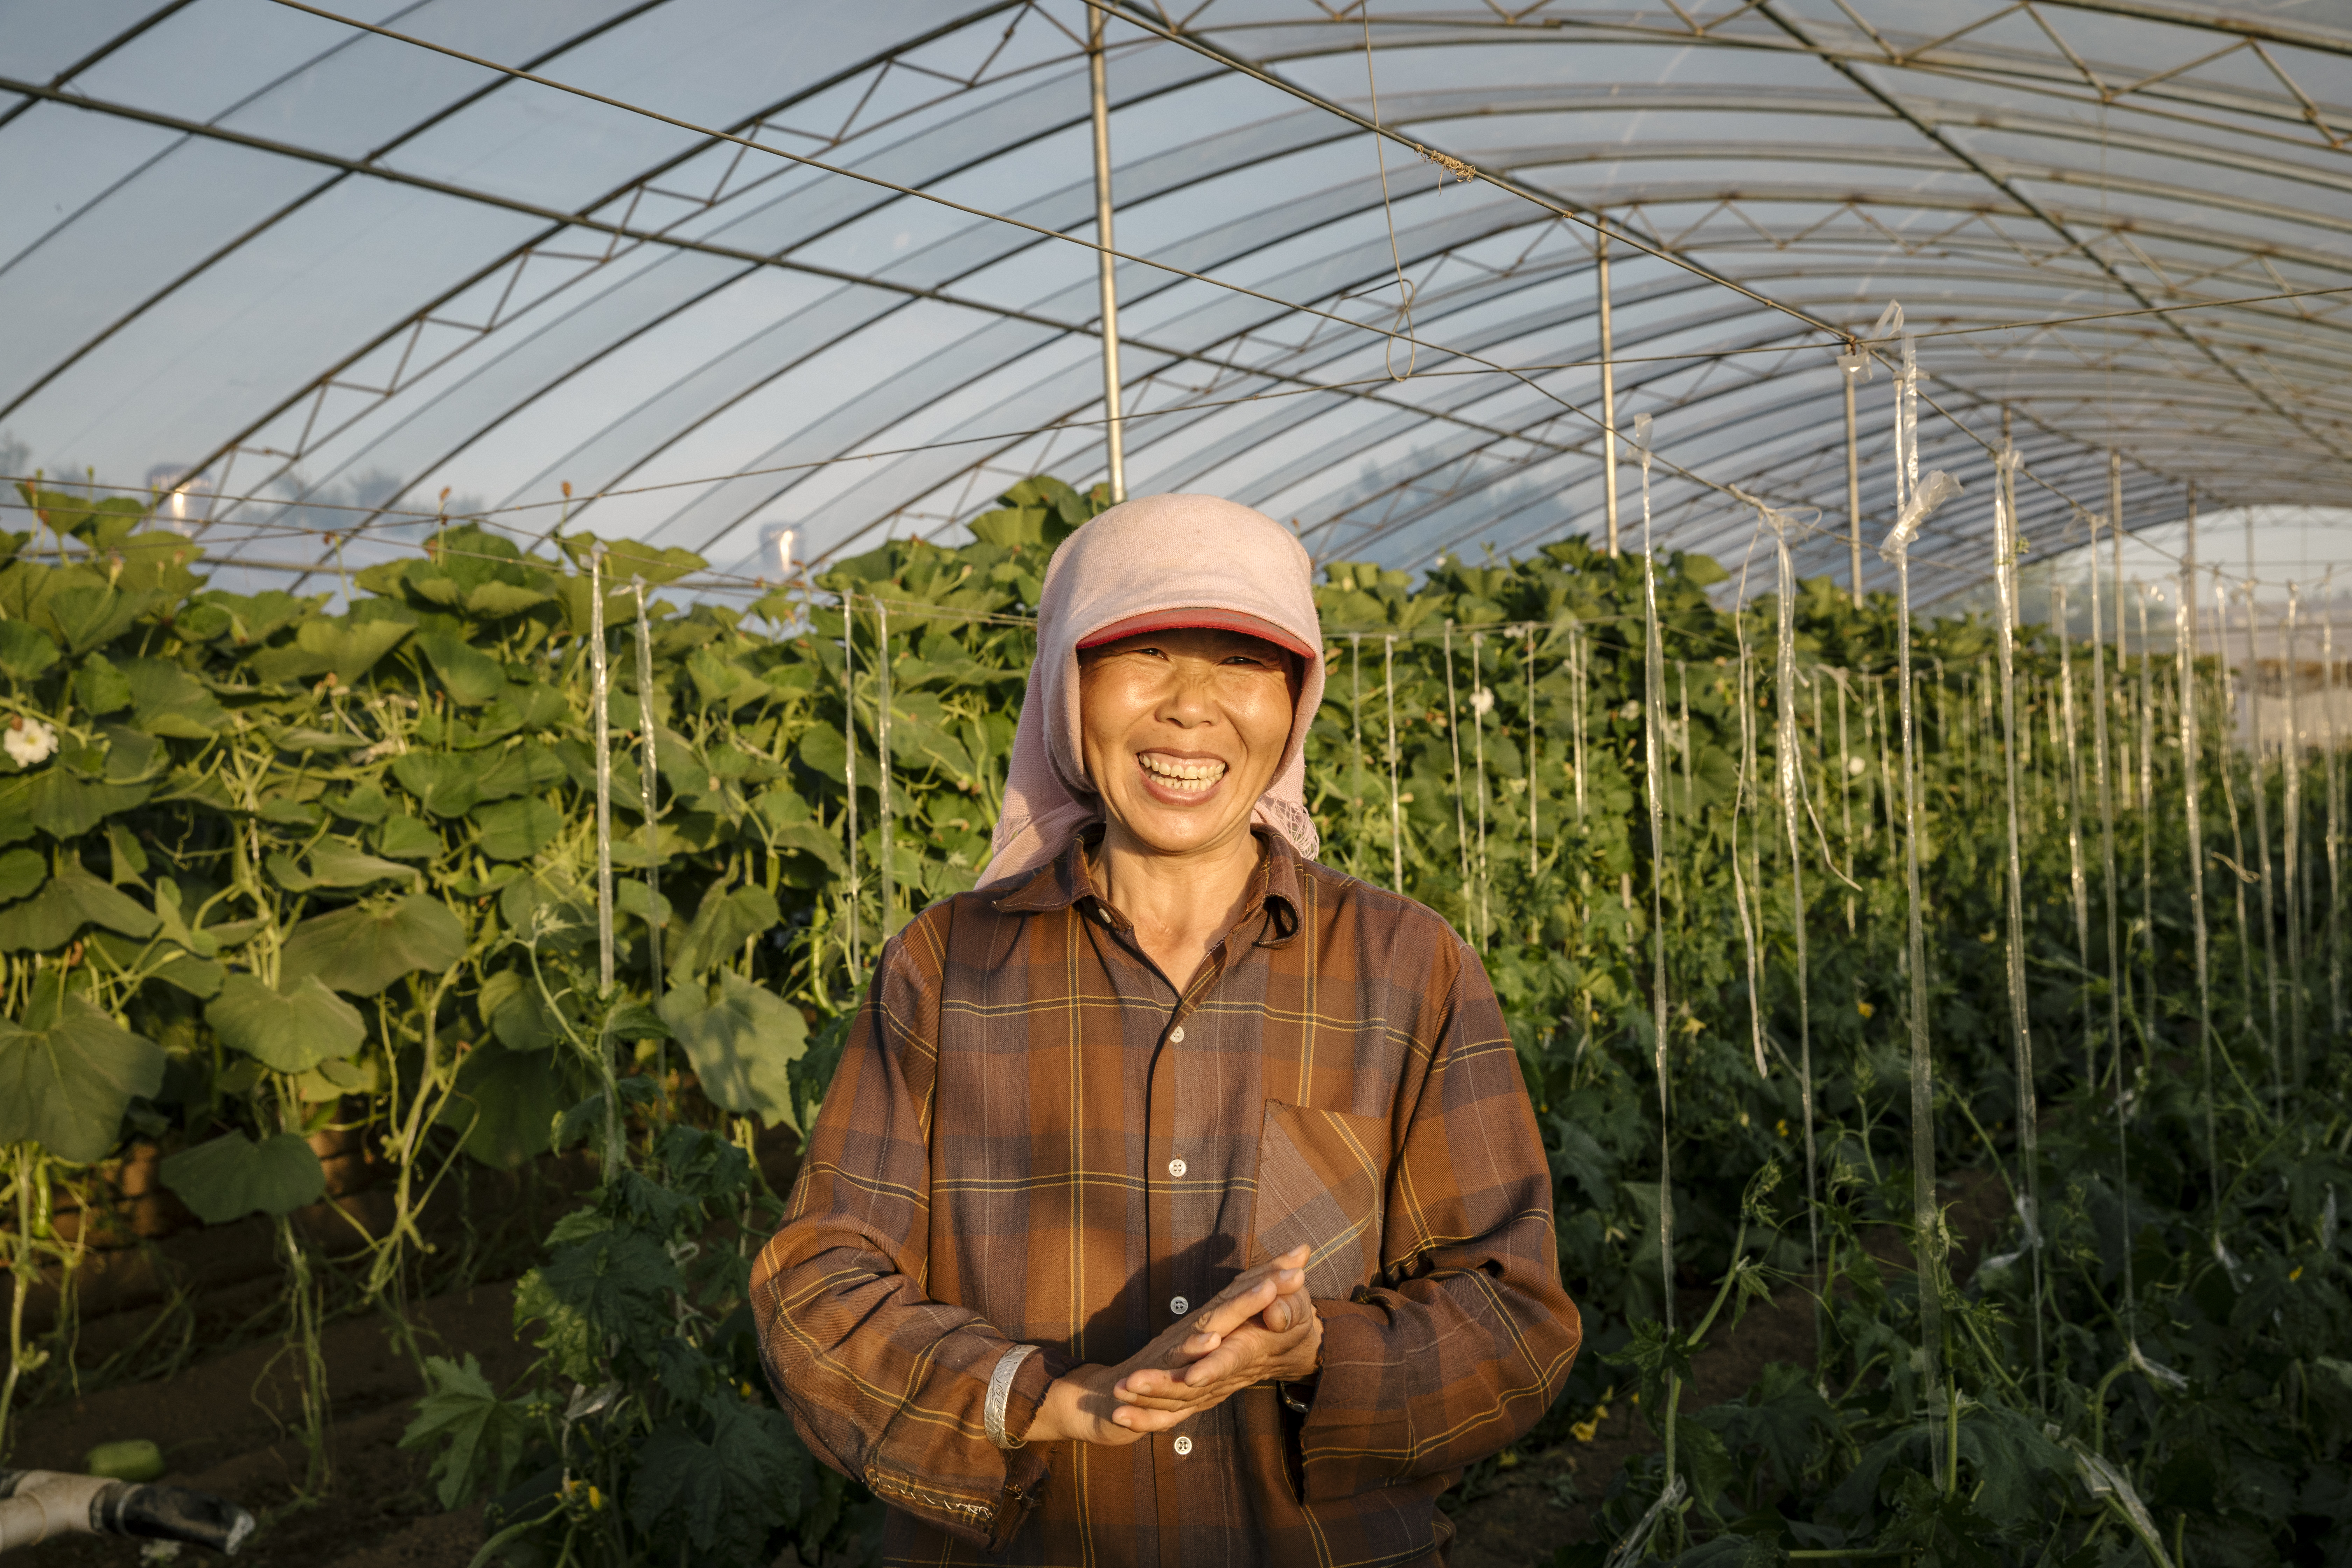 Reflections on UN Food Systems Summit progress to date